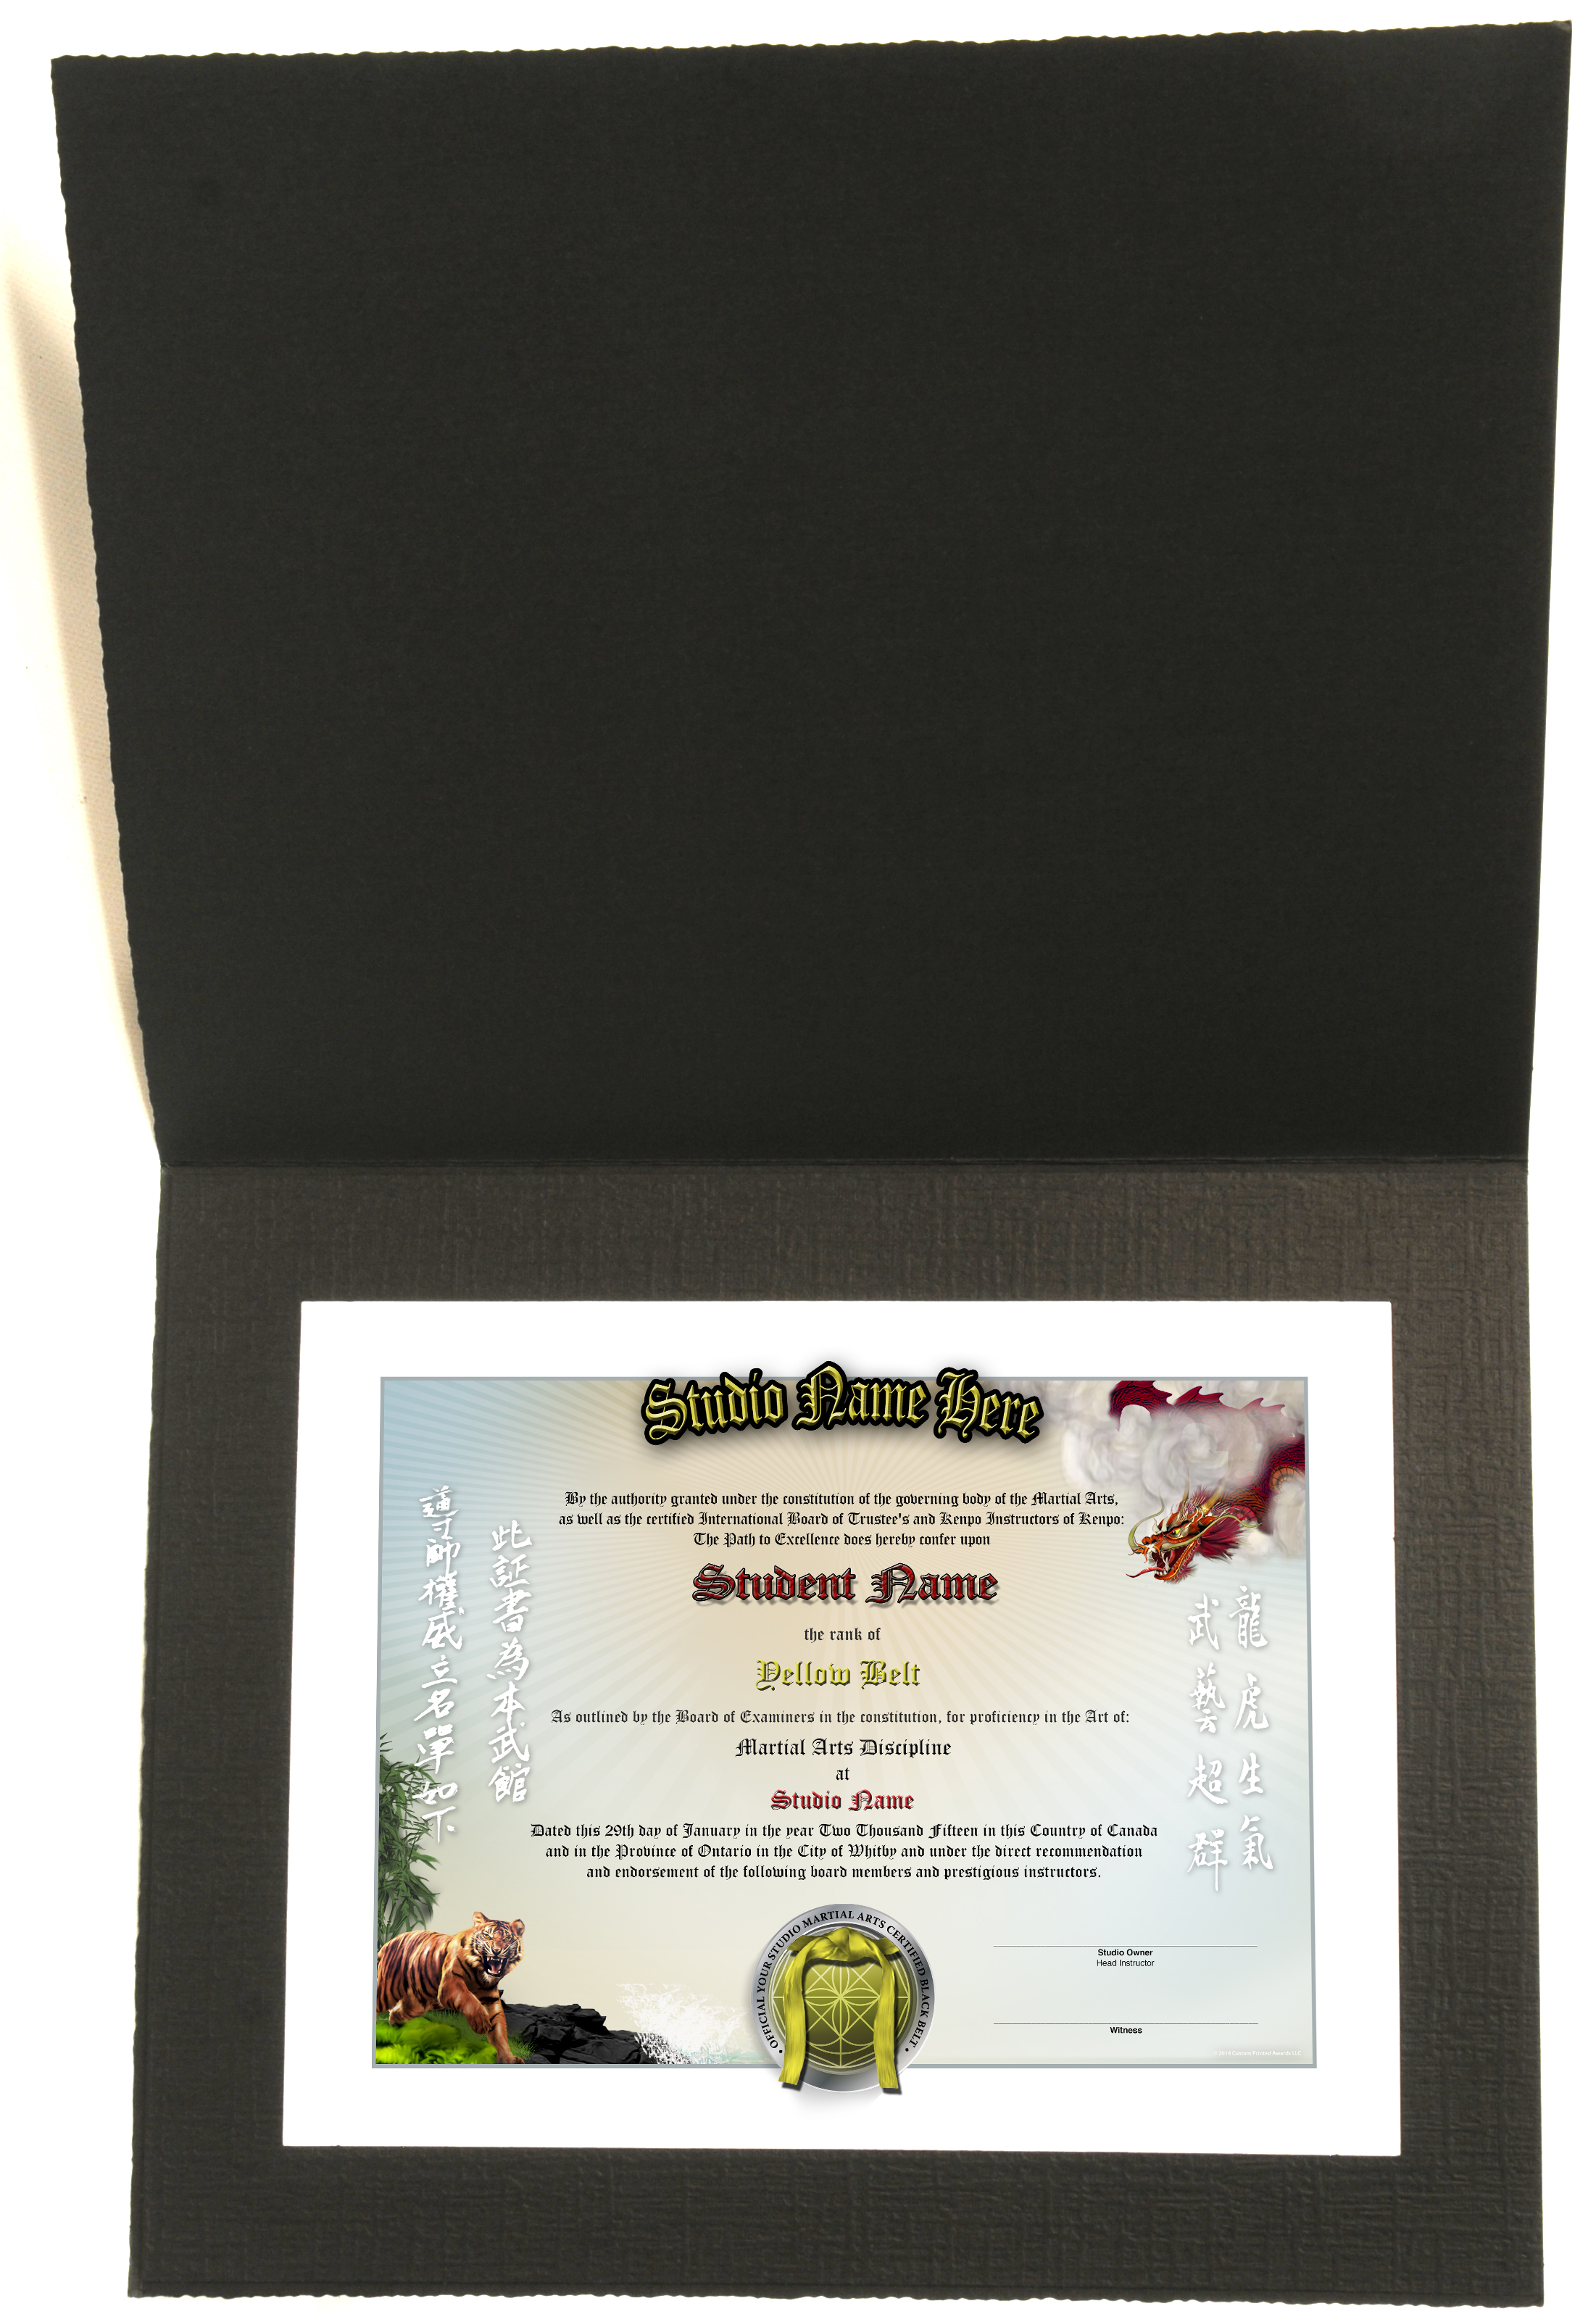 karate black belt certificate templates gallery - templates, Presentation templates